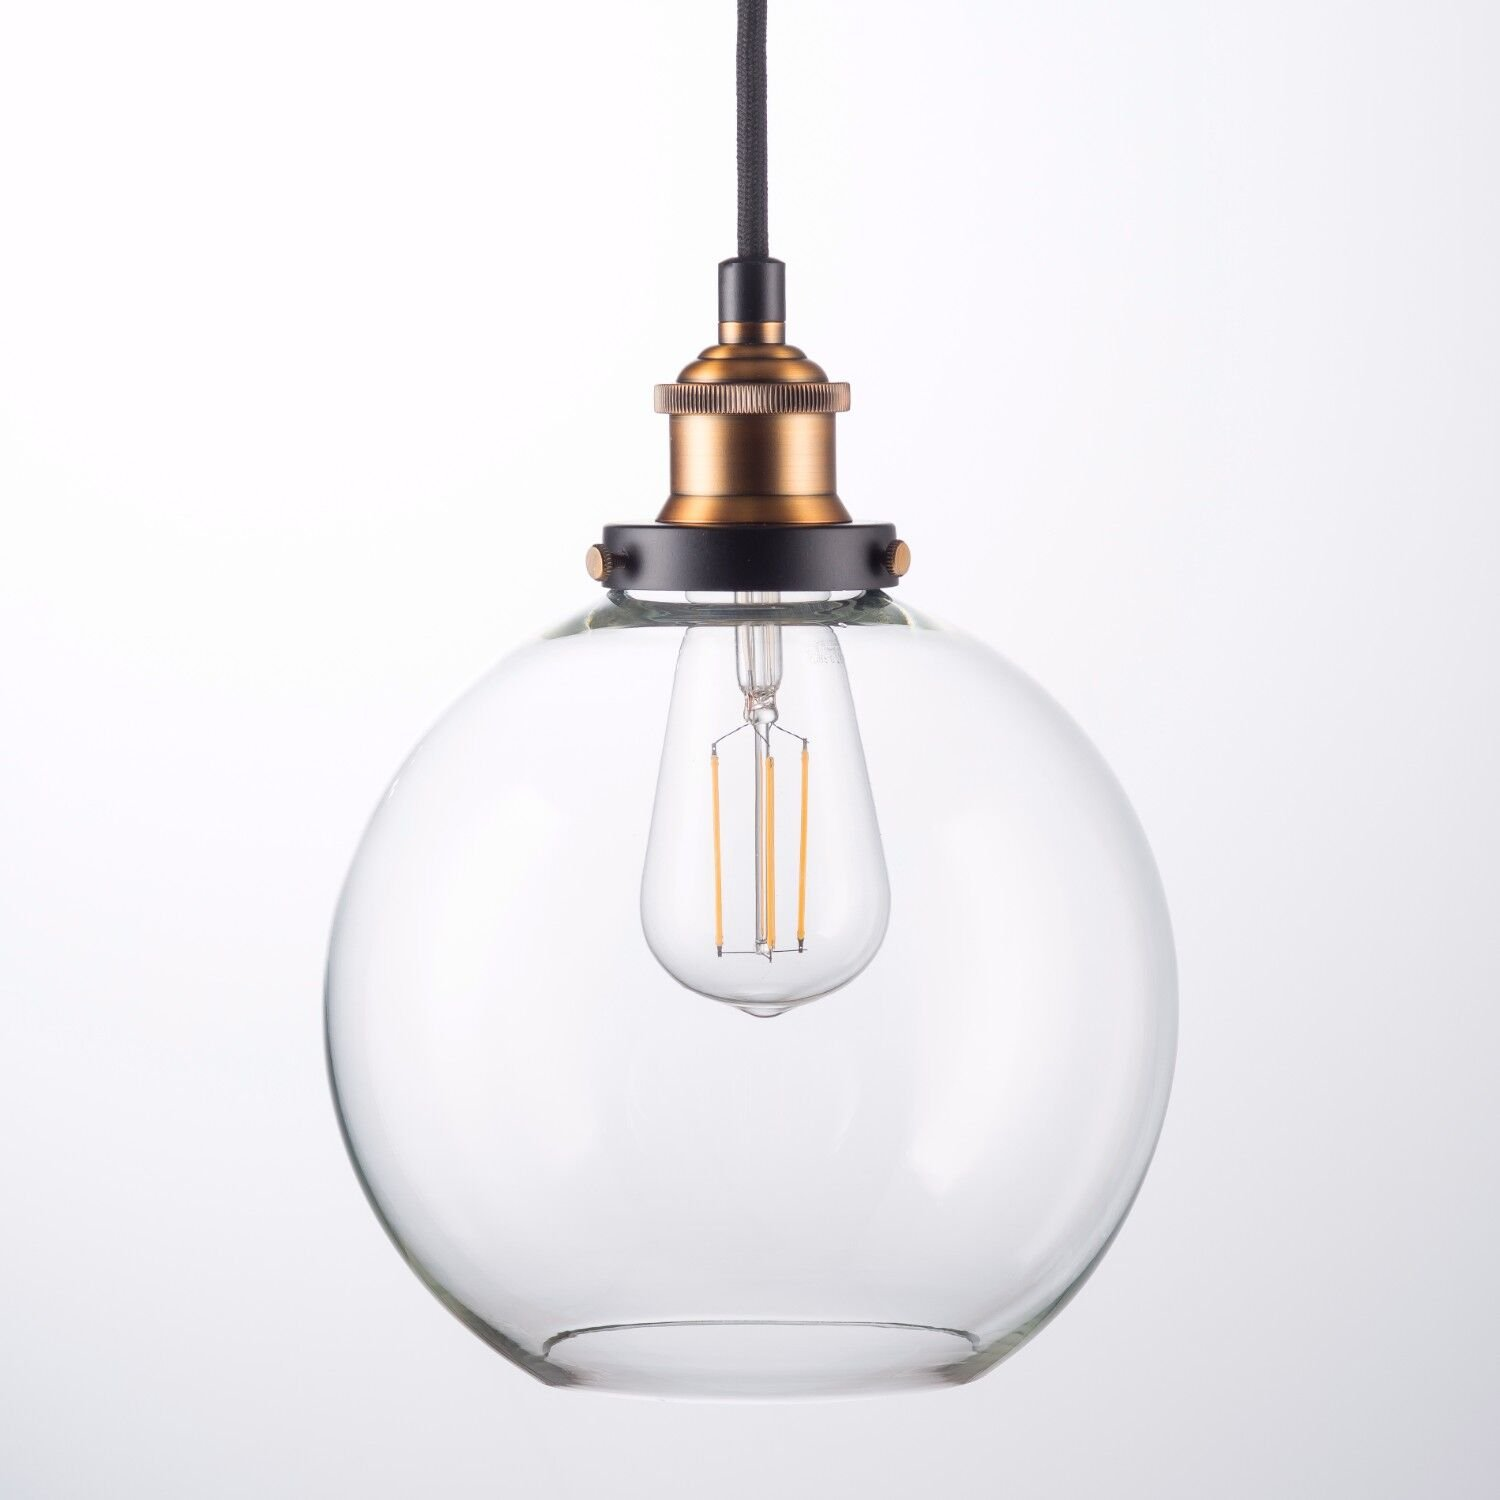 Primo Led Industrial Kitchen Pendant Light   Antique Brass Hanging Fixture   Linea Di Liara Ll P429 Led Ab by Linea Di Liara